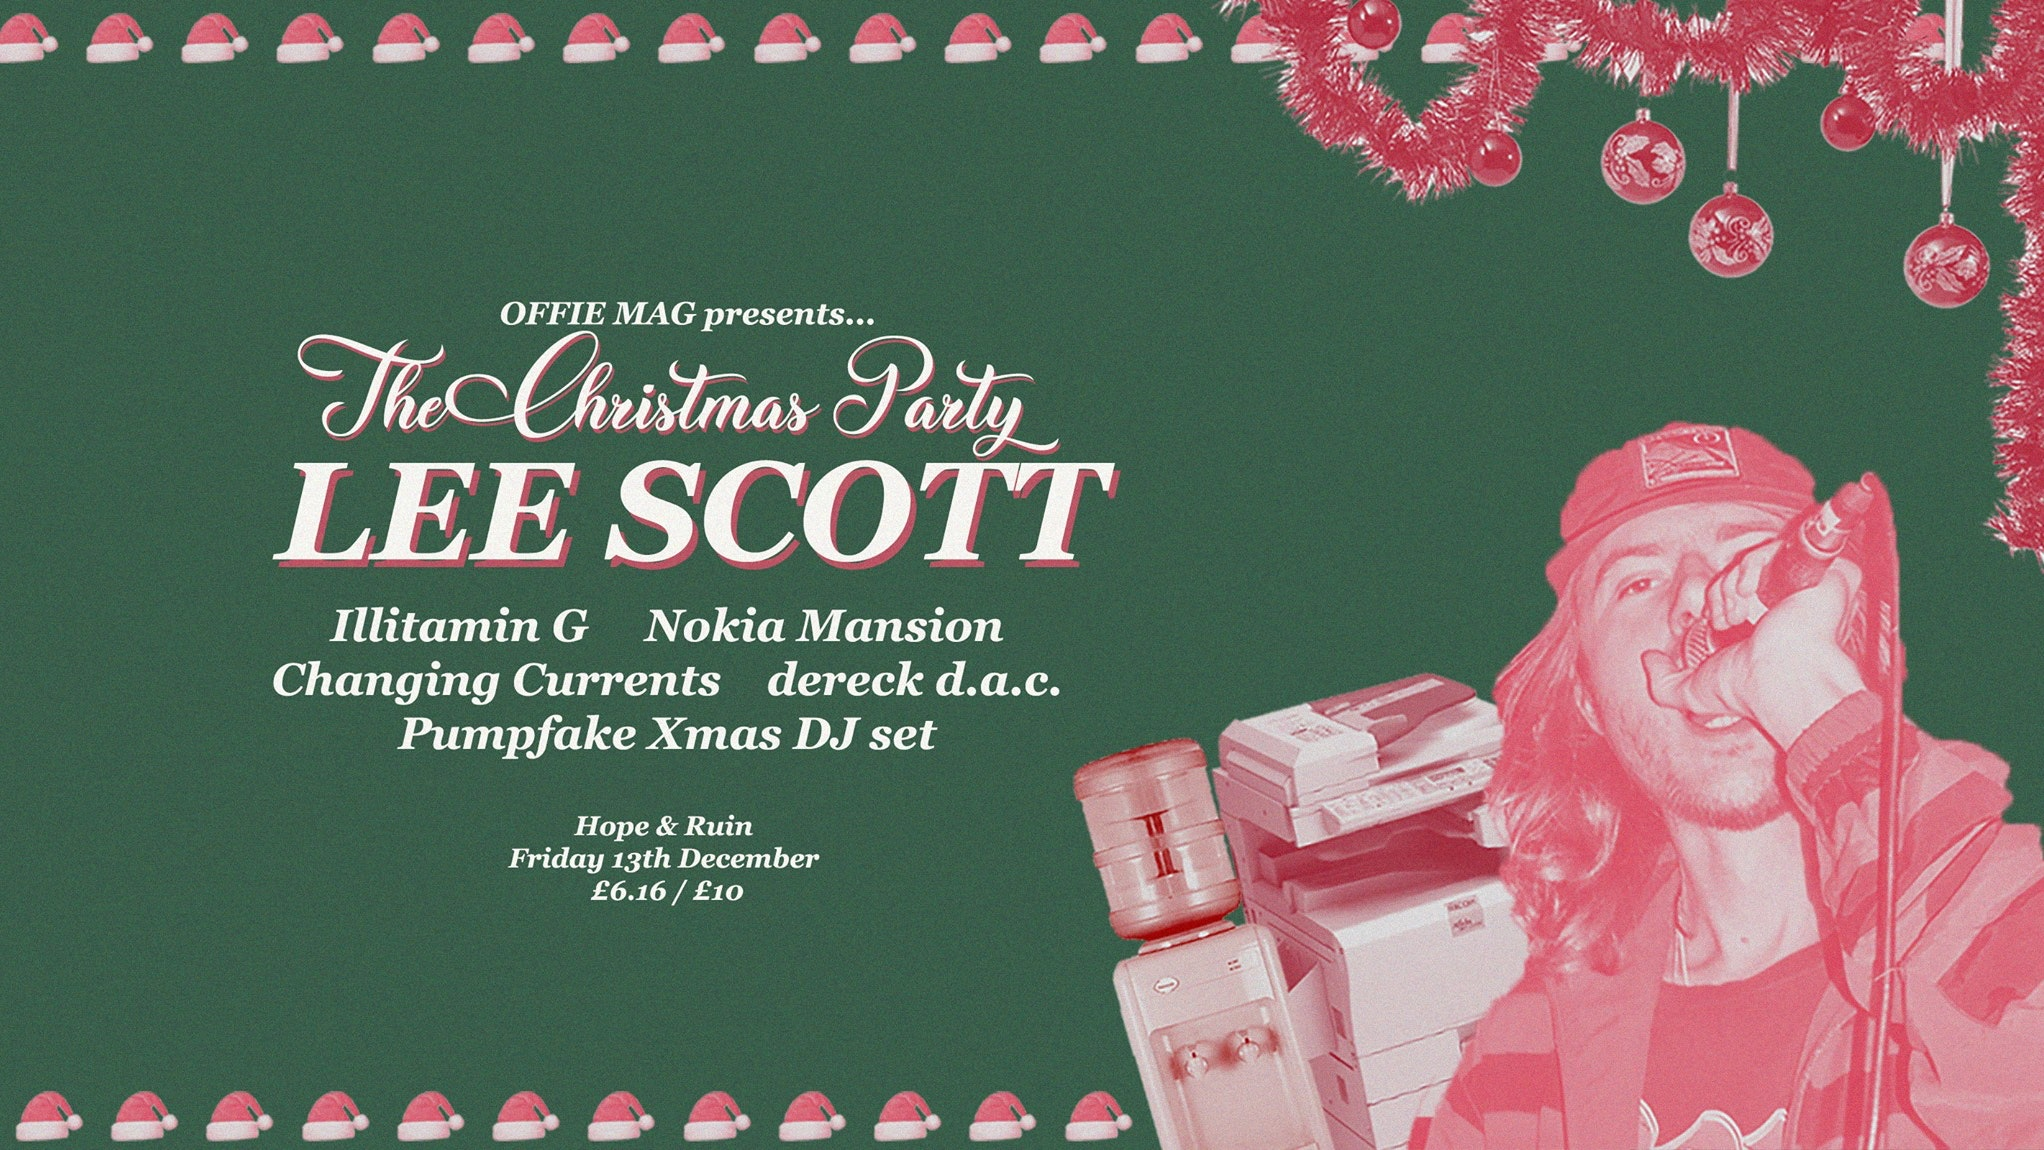 OFFIE MAG Xmas Party: Lee Scott + Nokia Mansion + Changing Currents + Illitamin G + dereck d.a.c.